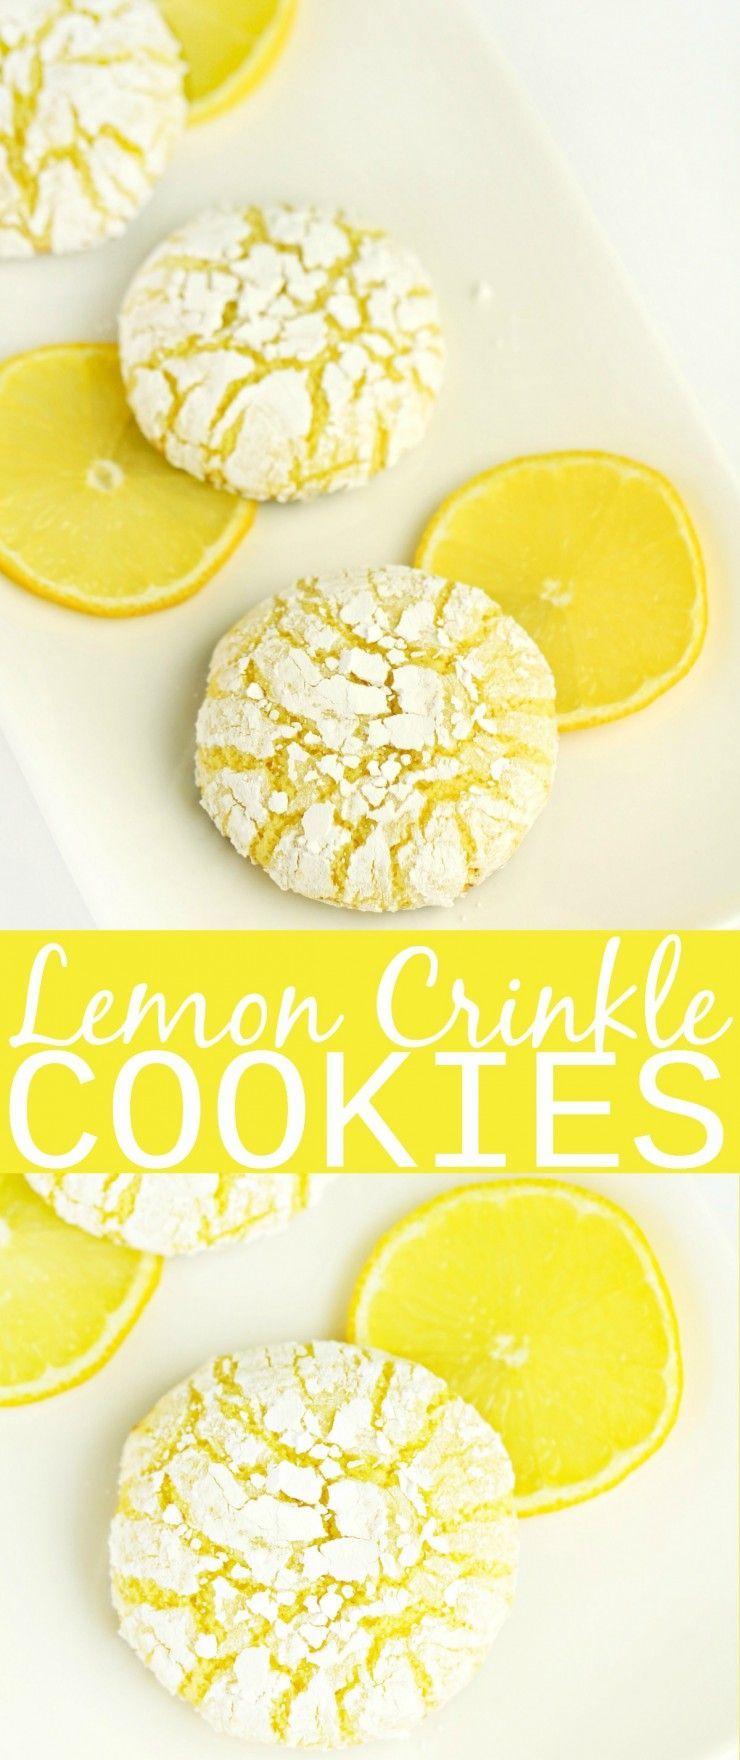 These melt-in-your-mouth Lemon Crinkle Cookies are absolutely dreamy. This cookie recipe is one of my favourites, I could have these for dessert everyday and be happy! #quickcookies